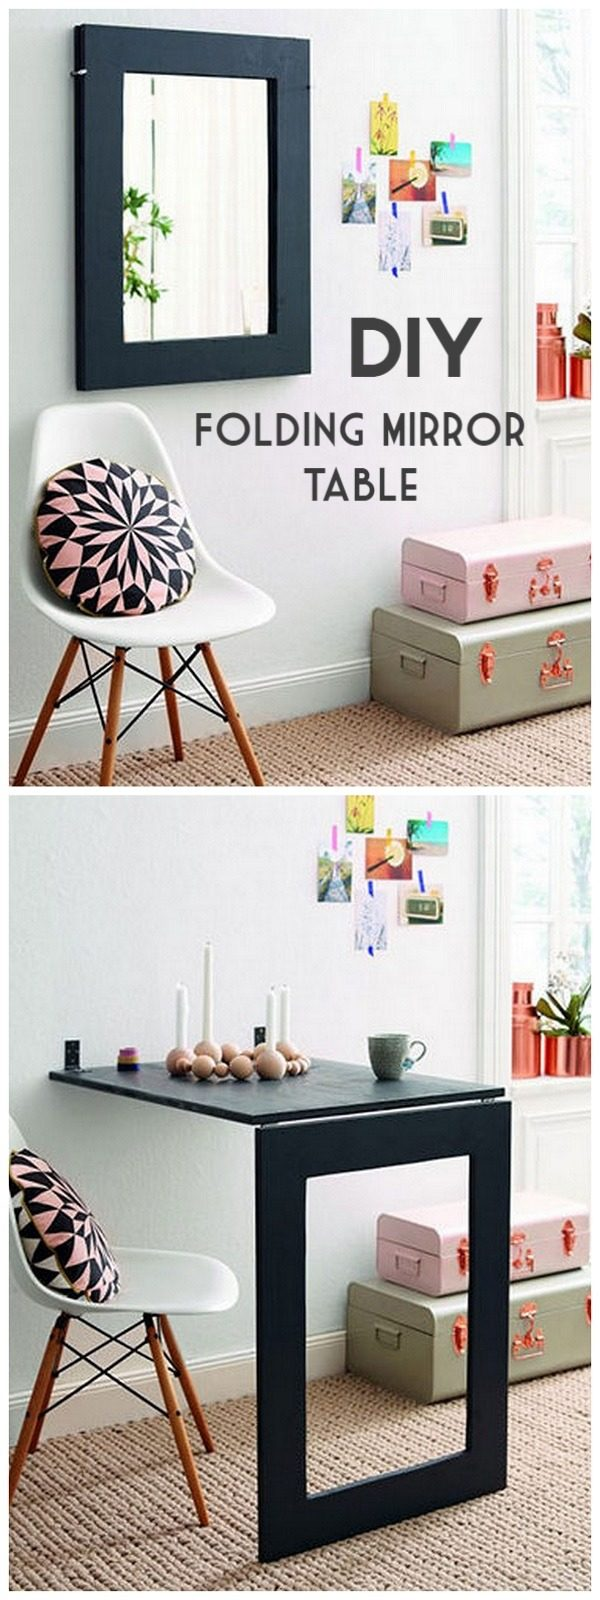 Check out the tutorial on how to make a #DIY table. Looks easy enough! #HomeDecorIdeas